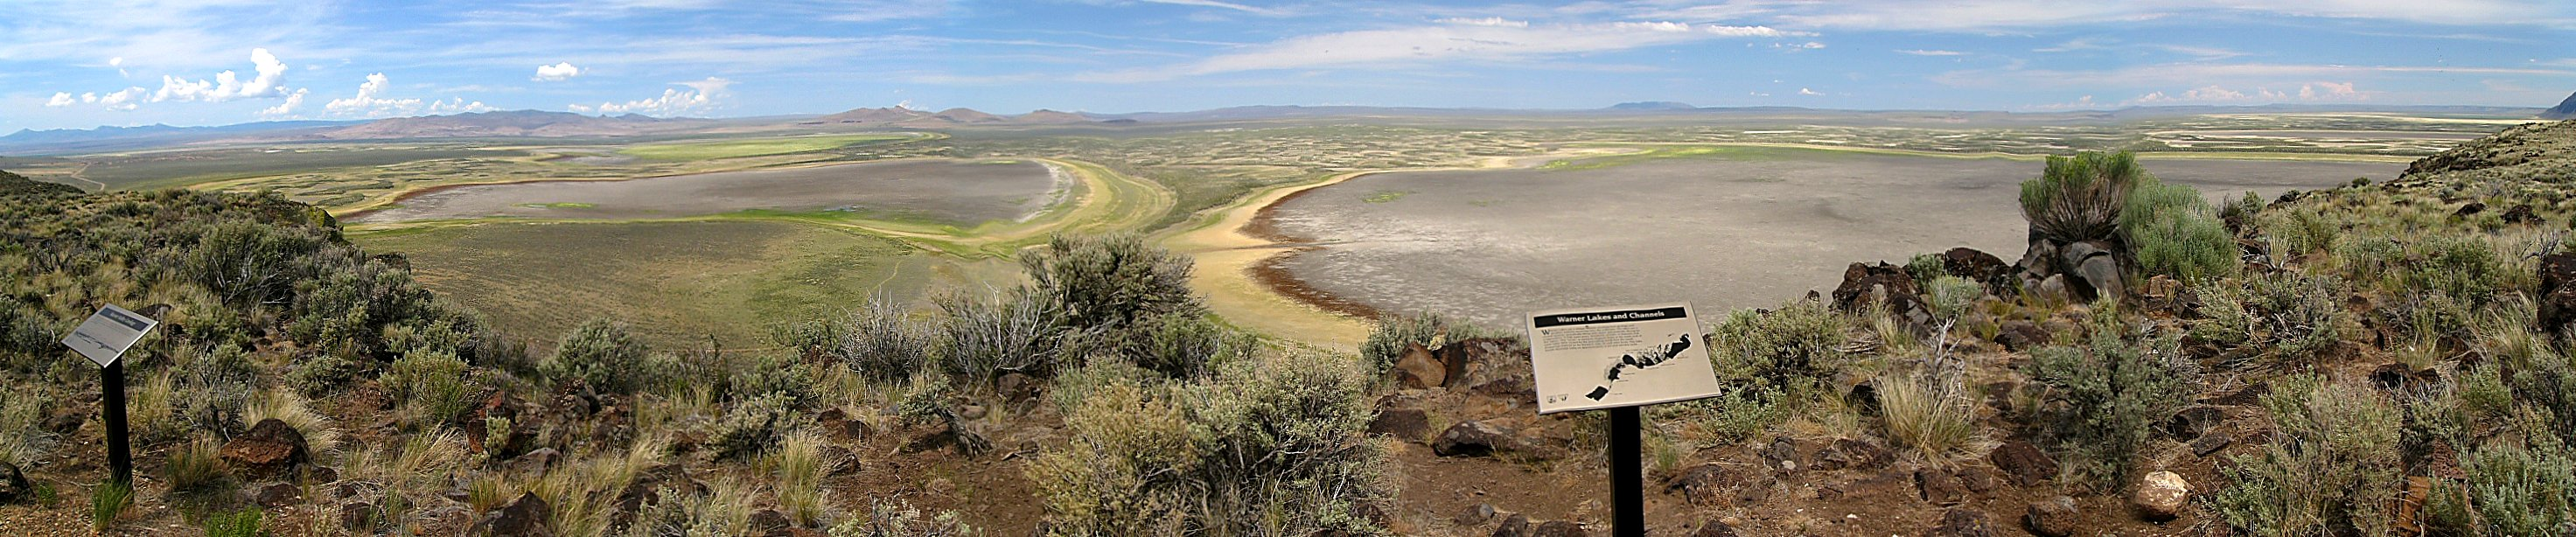 Panorama of the Warner Wetlands at the base of Hart Mountain, southeast Oregon.